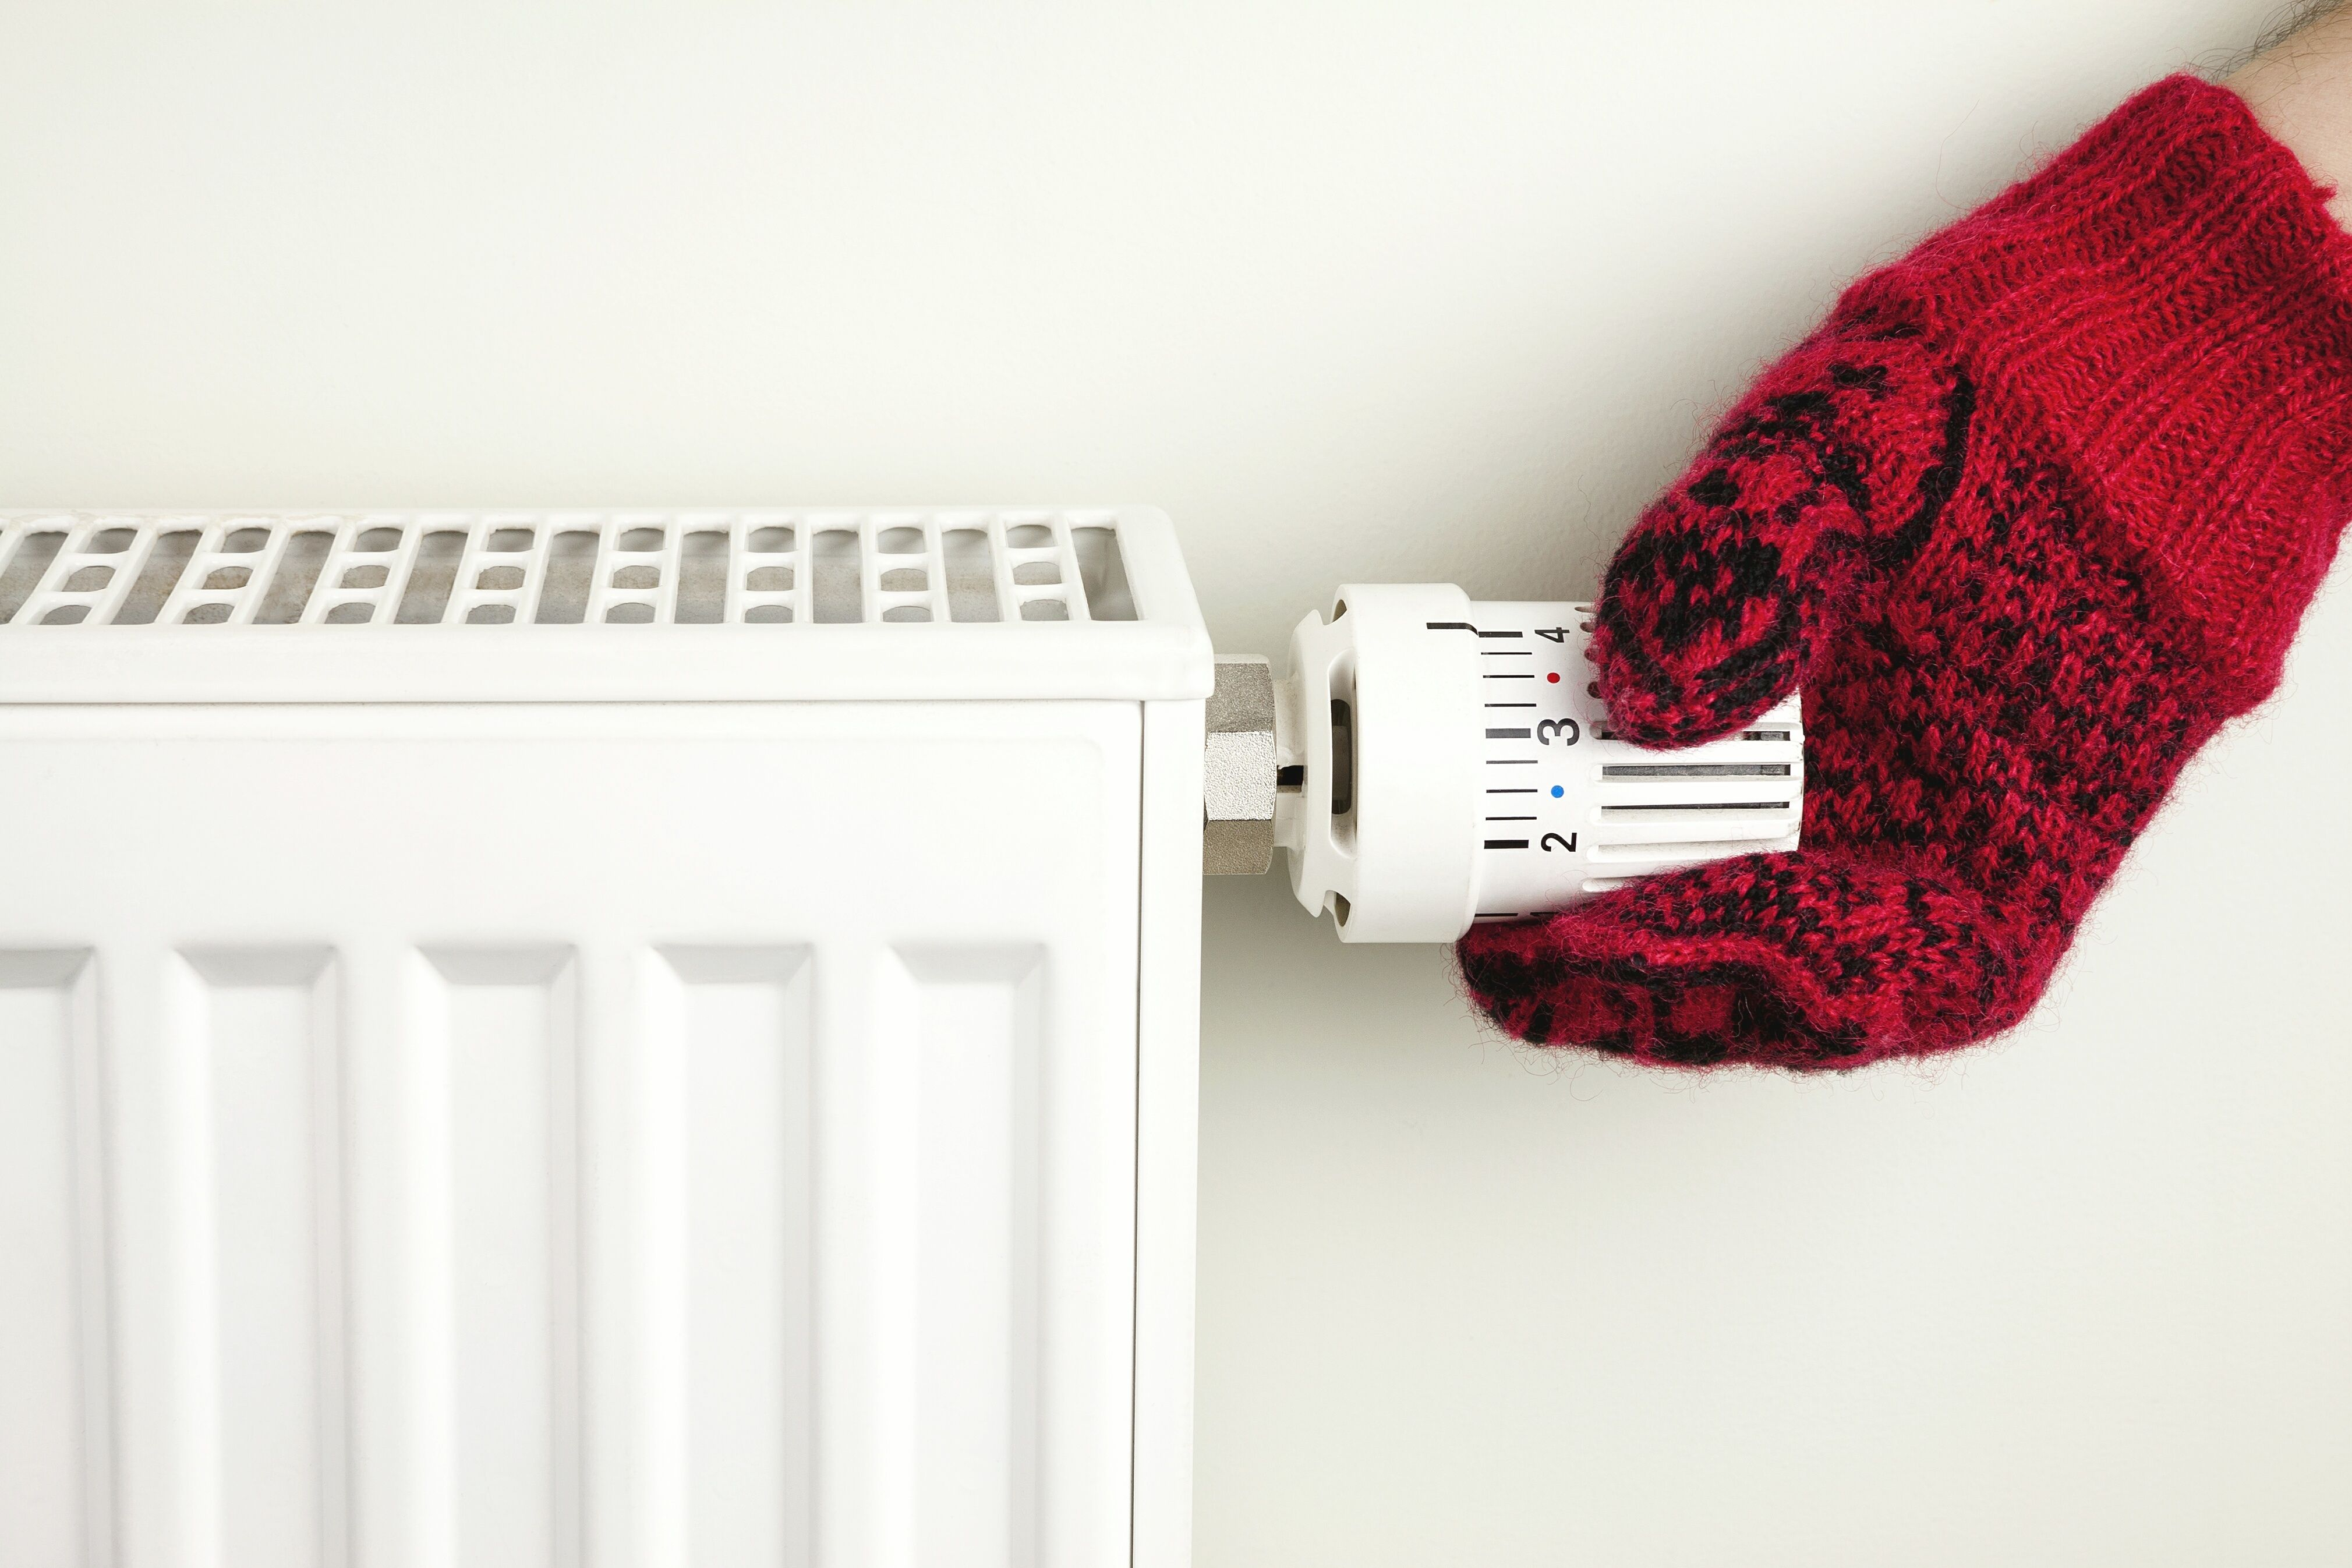 4 energy-saving myths busted... and 4 tips that really work